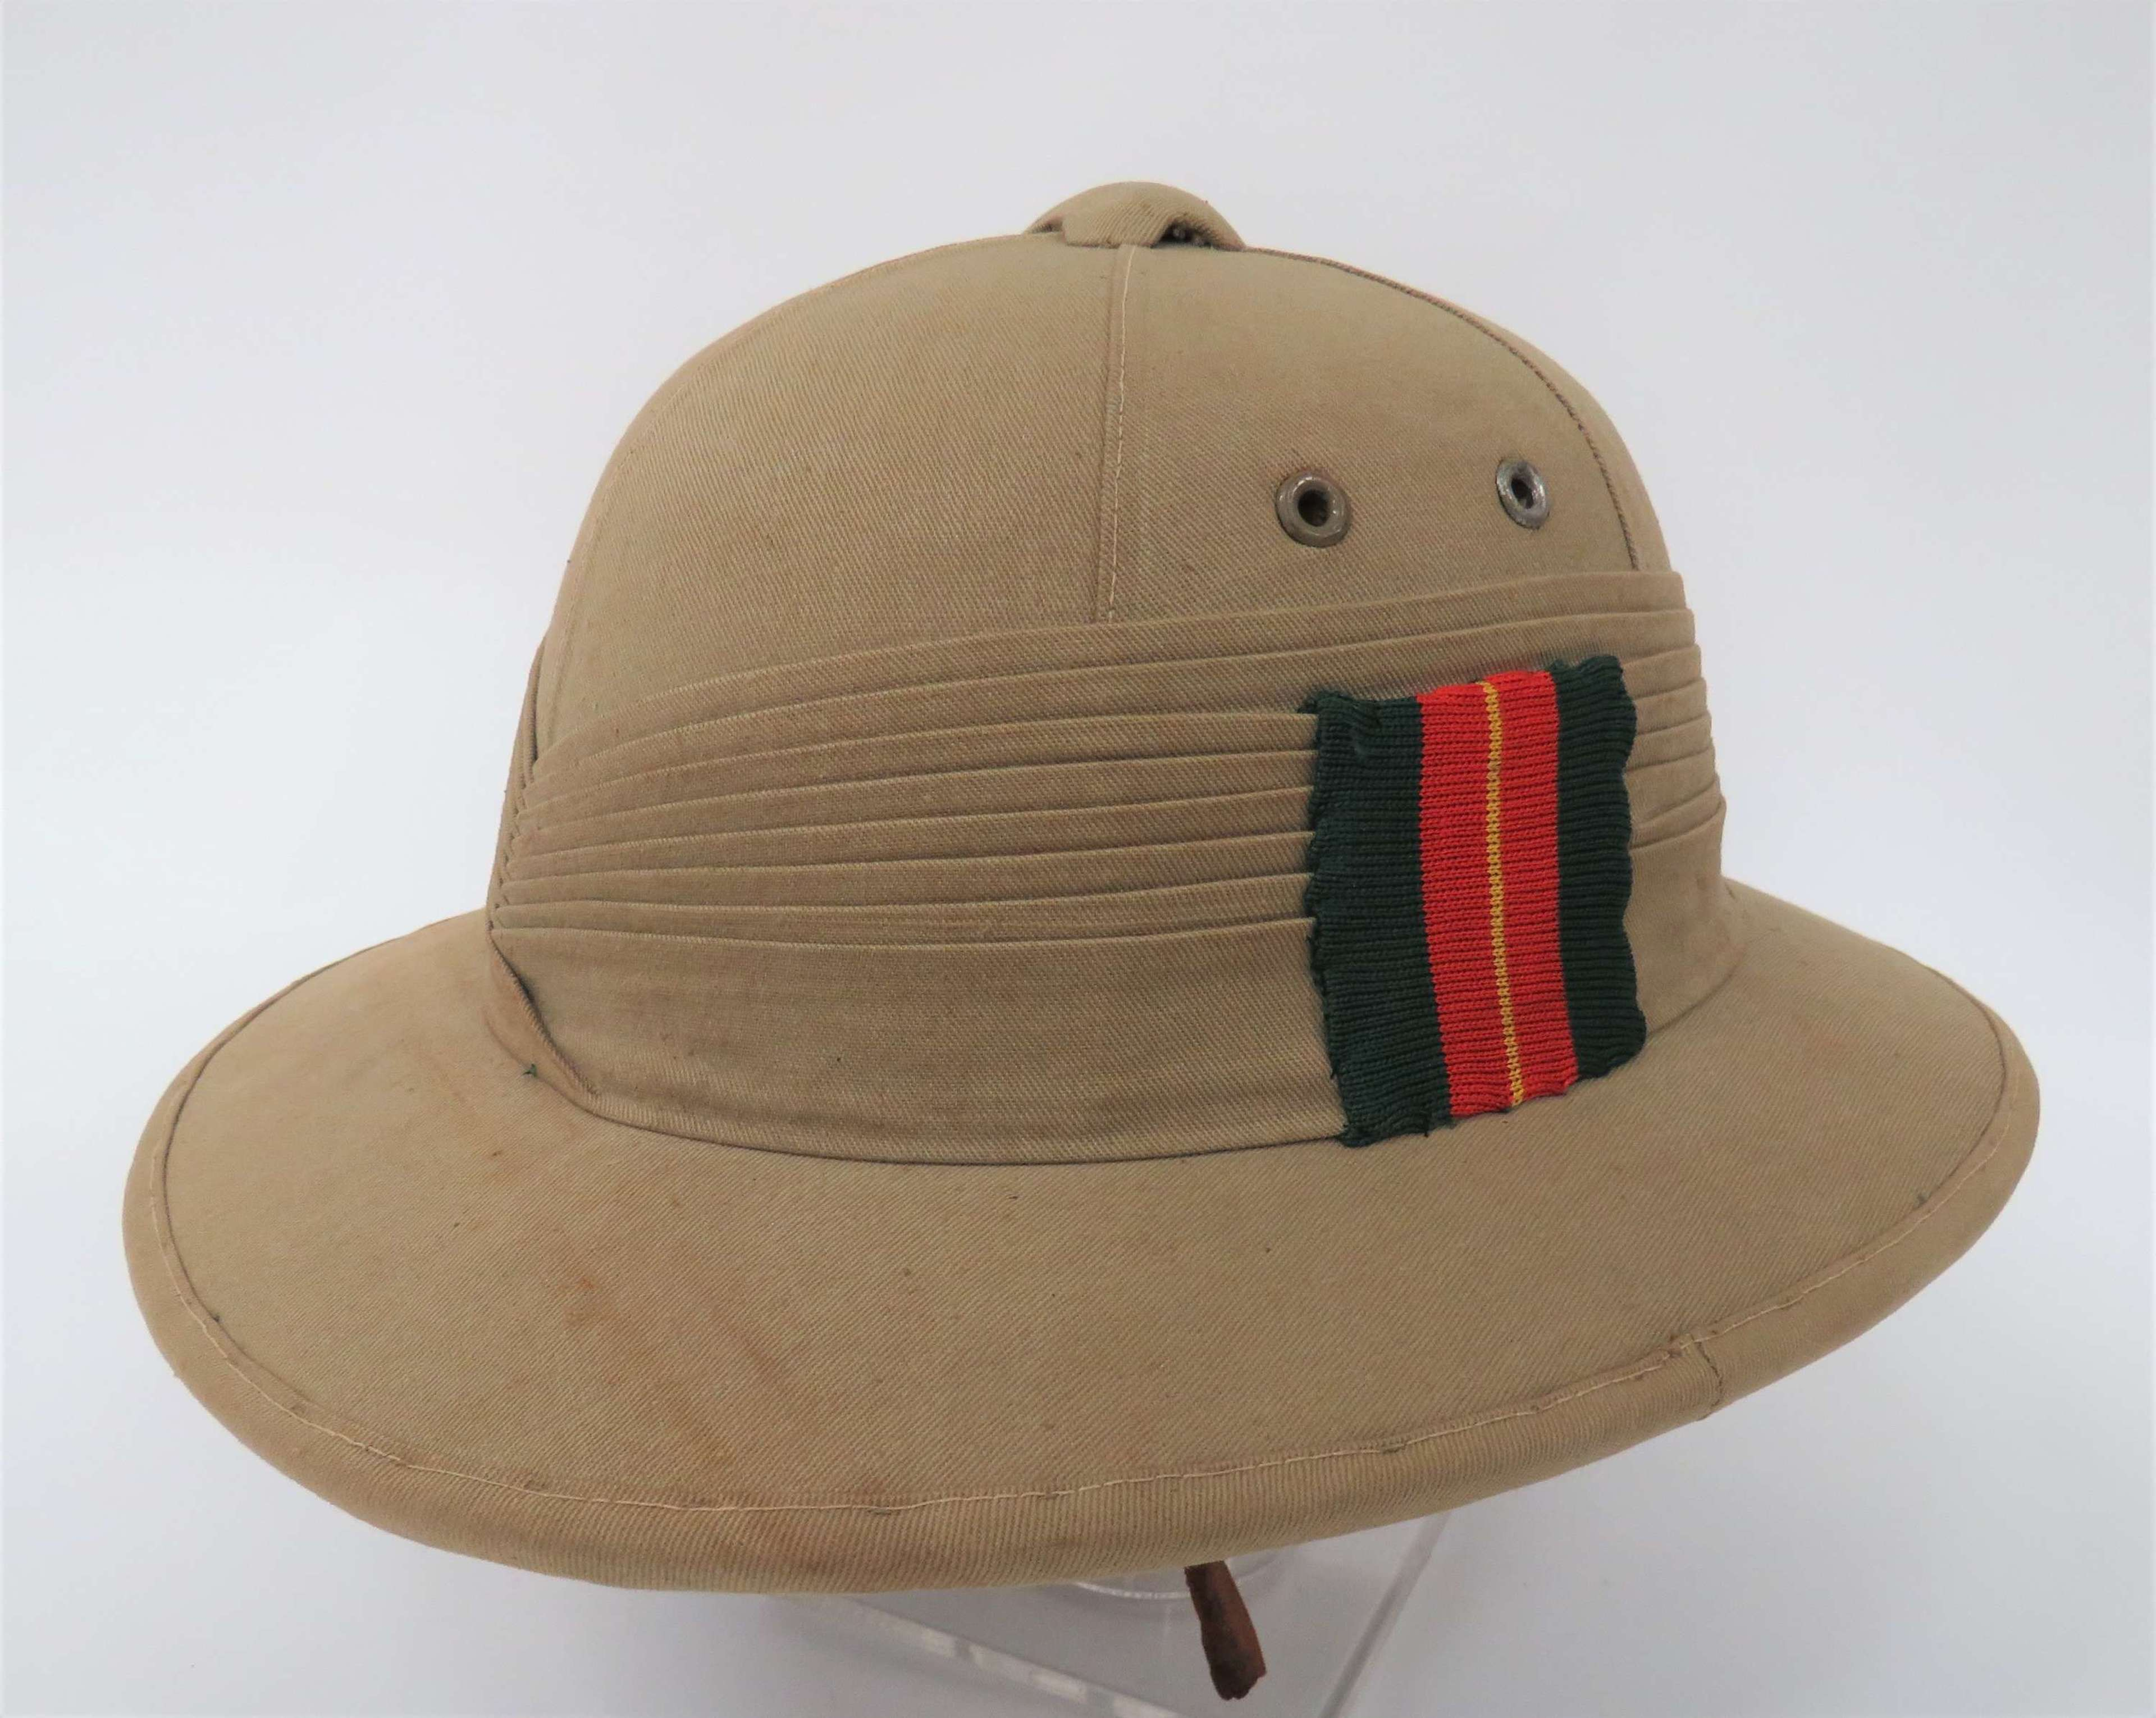 13th Frontier Force Rifles Pith Helmet